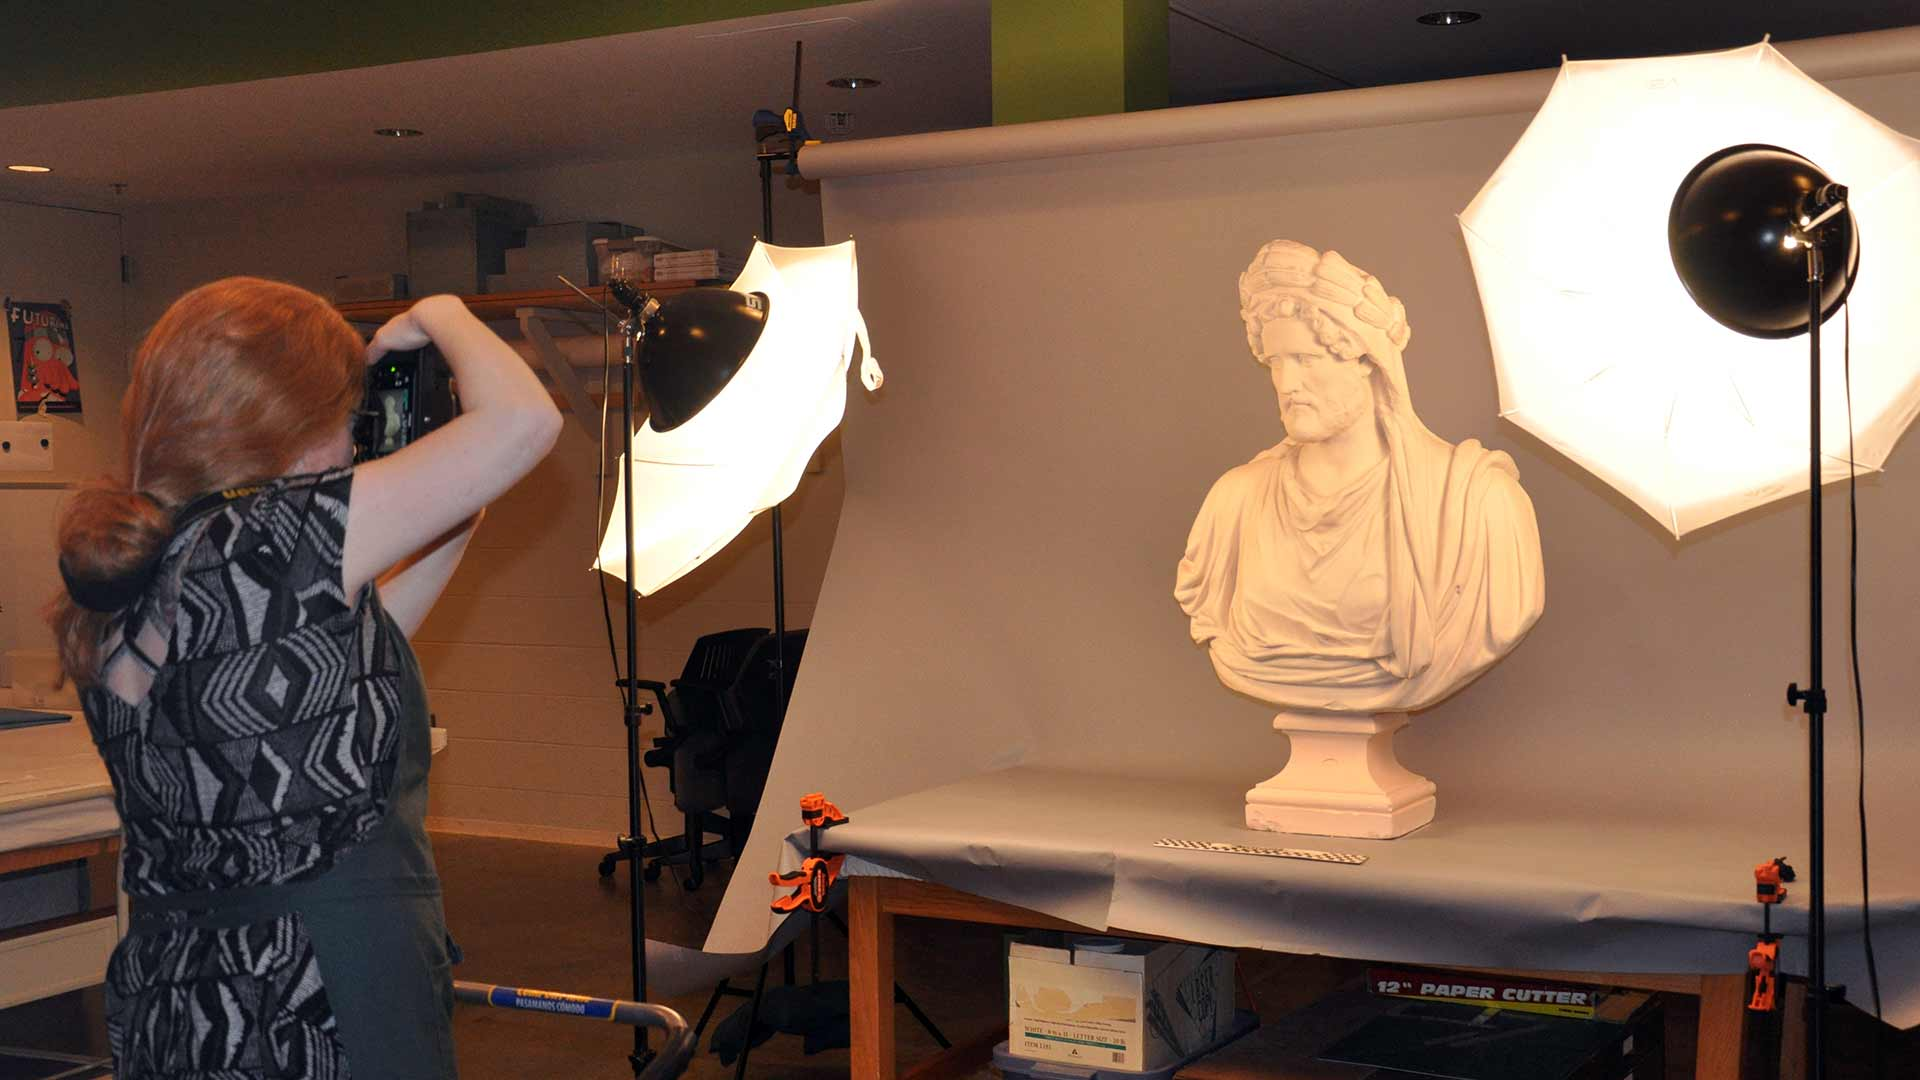 Plaster cast busts are prepared for loan overview image